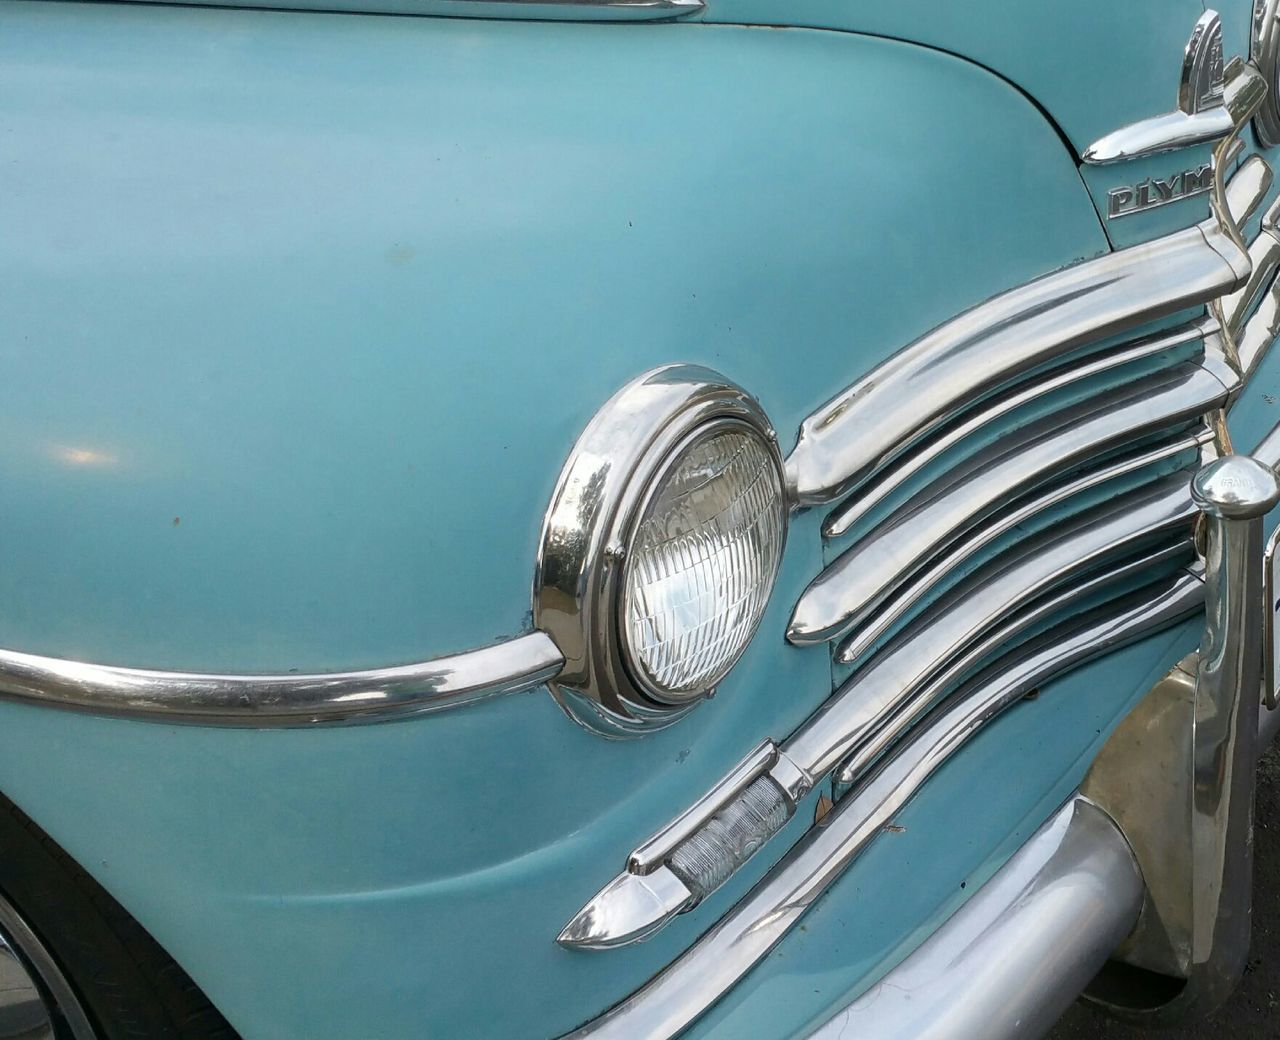 Car Antique Robin Egg Blue Color Love Old Cars  Saw This On My Walk This Week On Eyeem Showcase: January The EyeEm Facebook Cover Challenge Car Collection